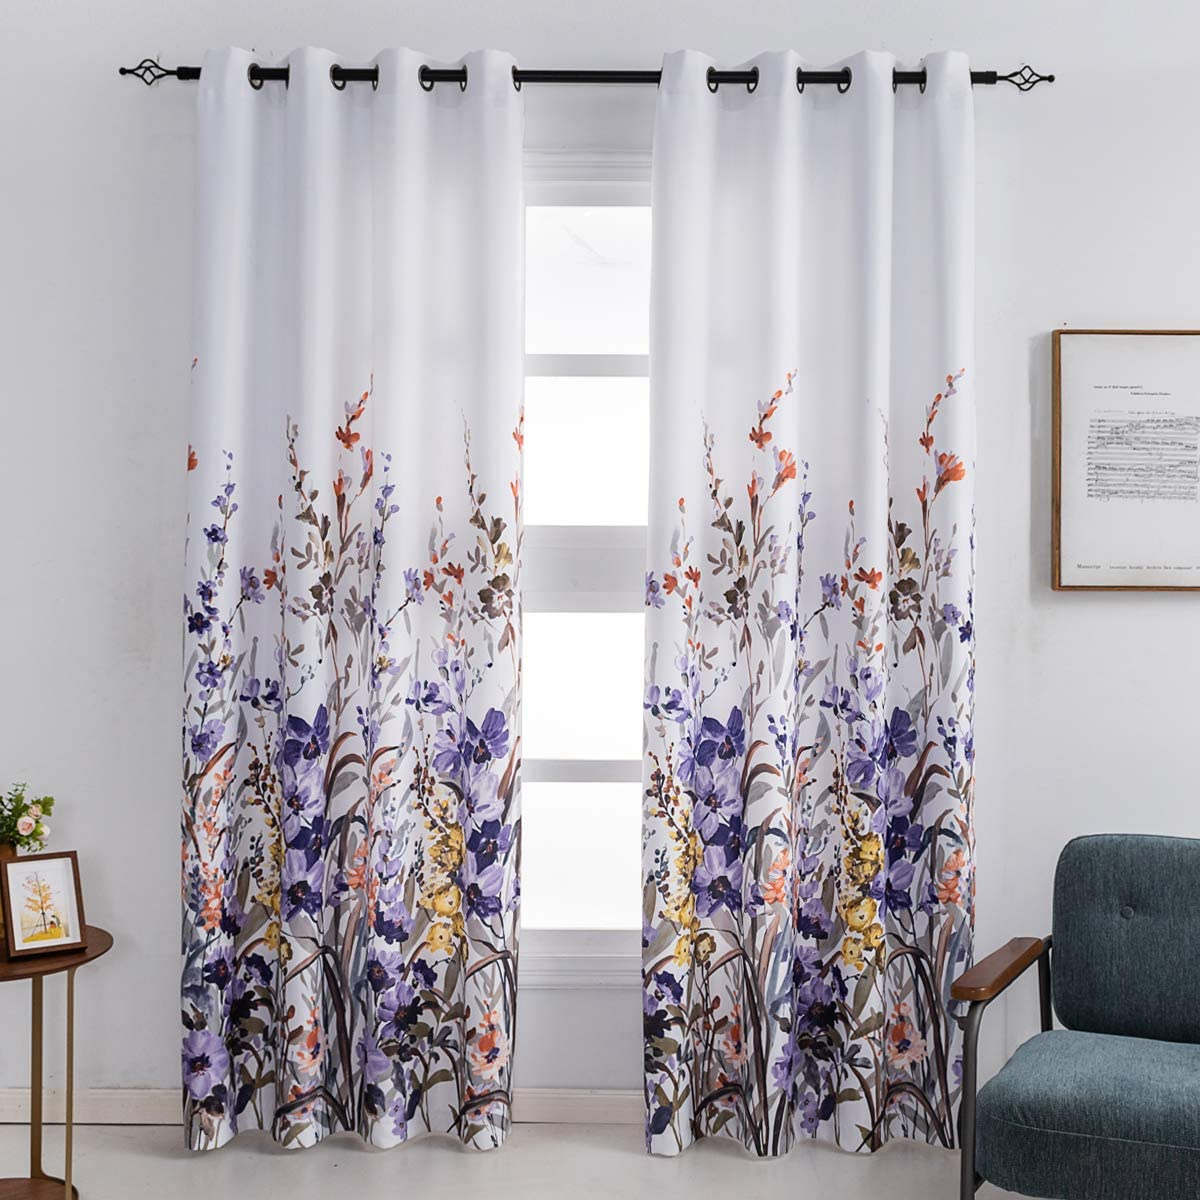 Kotile Floral Print Pattern Window Curtains 2 Panel Room Darkening Thermal Insulated Grommet Curtains For Living Room Purple 52 X 95 Inches 2 Panels Sets Kitchen Dining